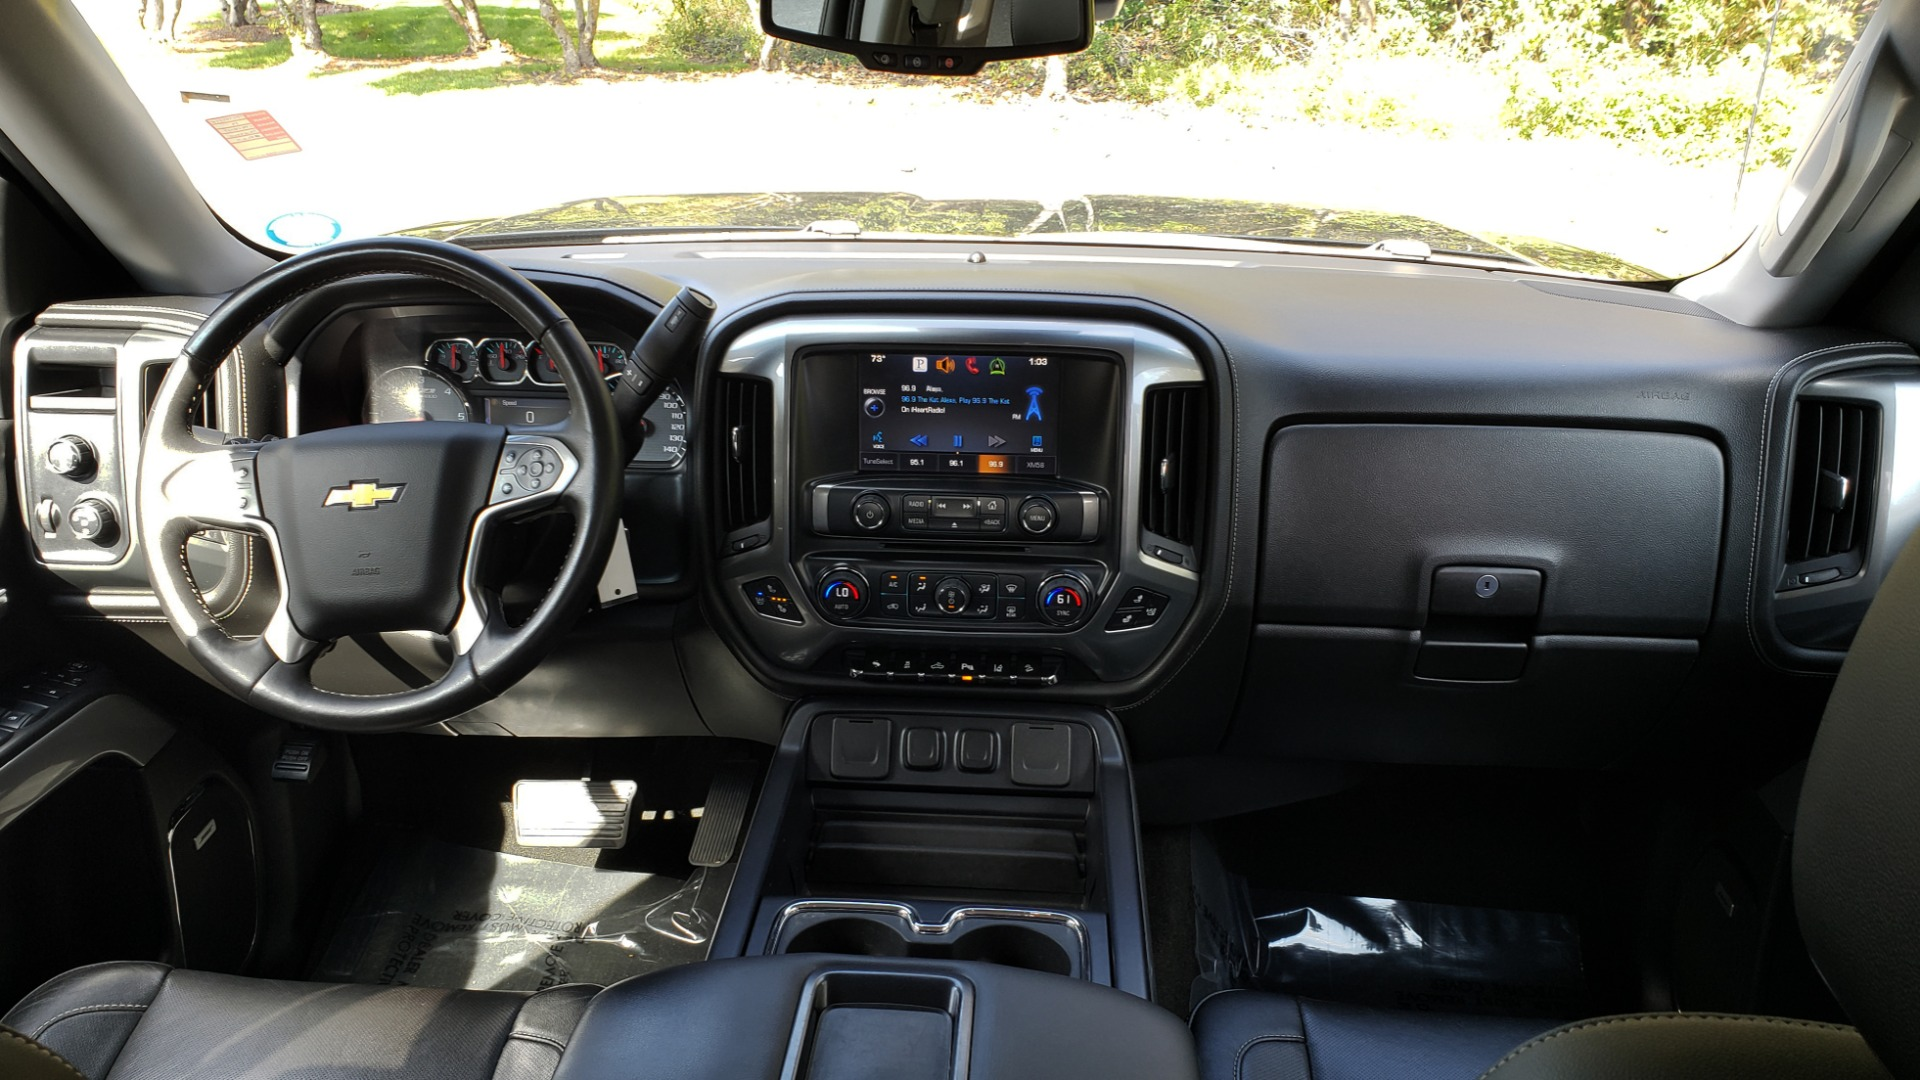 Used 2014 Chevrolet SILVERADO 1500 CREWCAB / LTZ PLUS PKG / 4WD / 2LZ / NAV / BOSE / REARVIEW for sale Sold at Formula Imports in Charlotte NC 28227 80